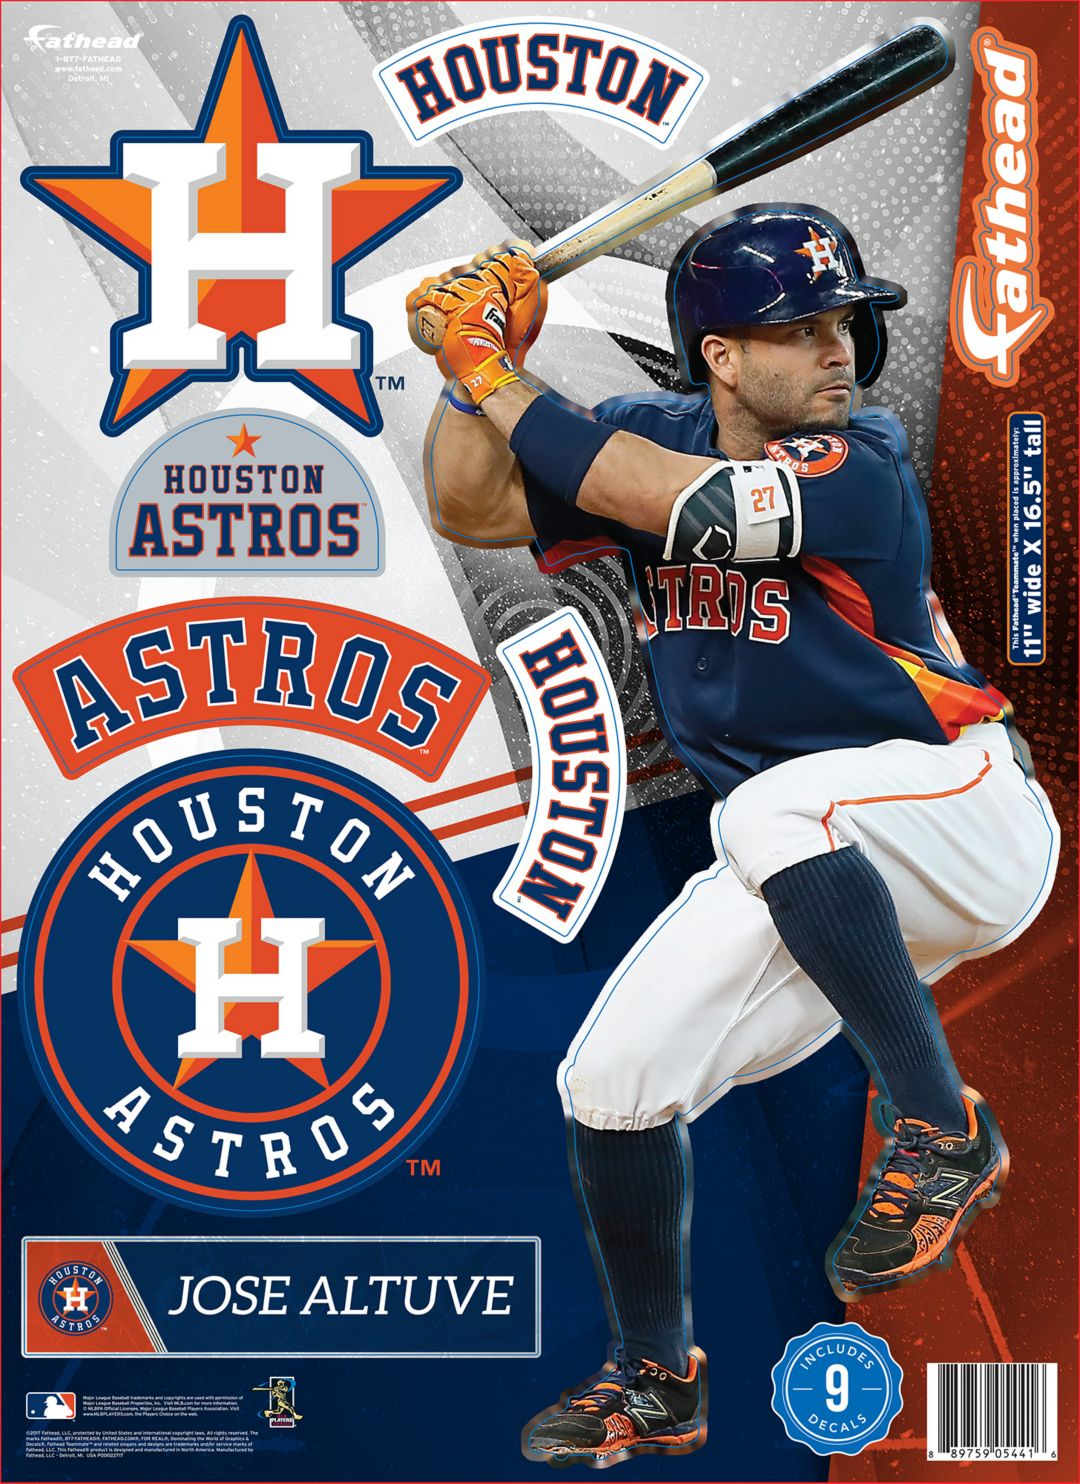 Houston Astros Jose Altuve Houston astros, José altuve